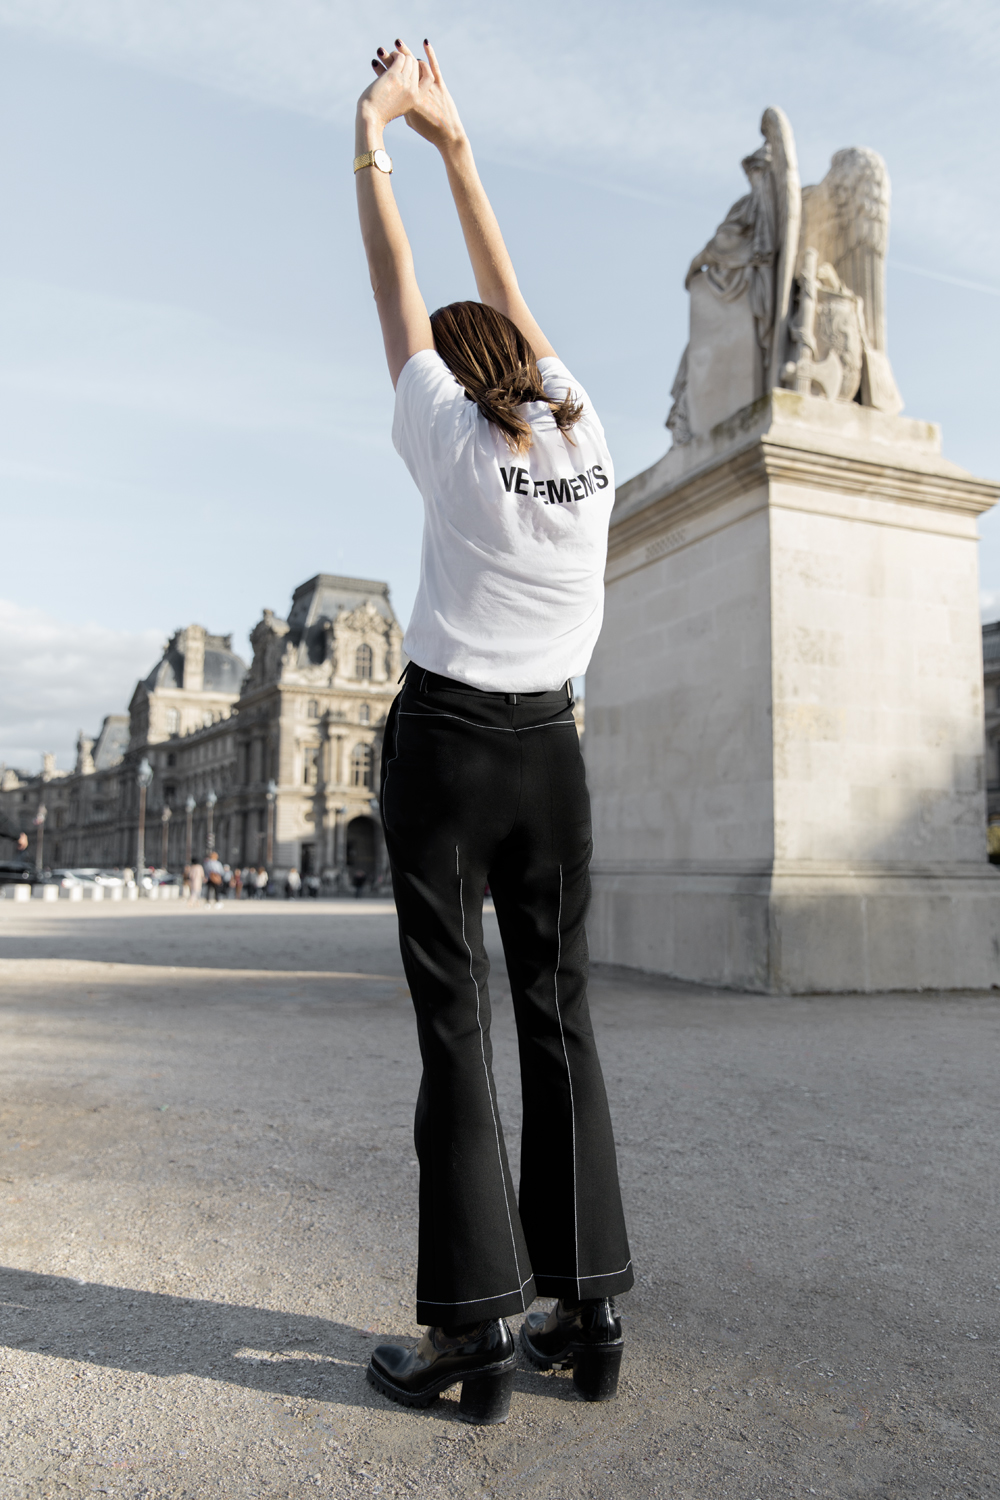 Paris-Outfit-Inspiration-Vetements-T-shirt-Louis-Vuitton-Lourve-Oracle-Fox-Amanda-Shadforth